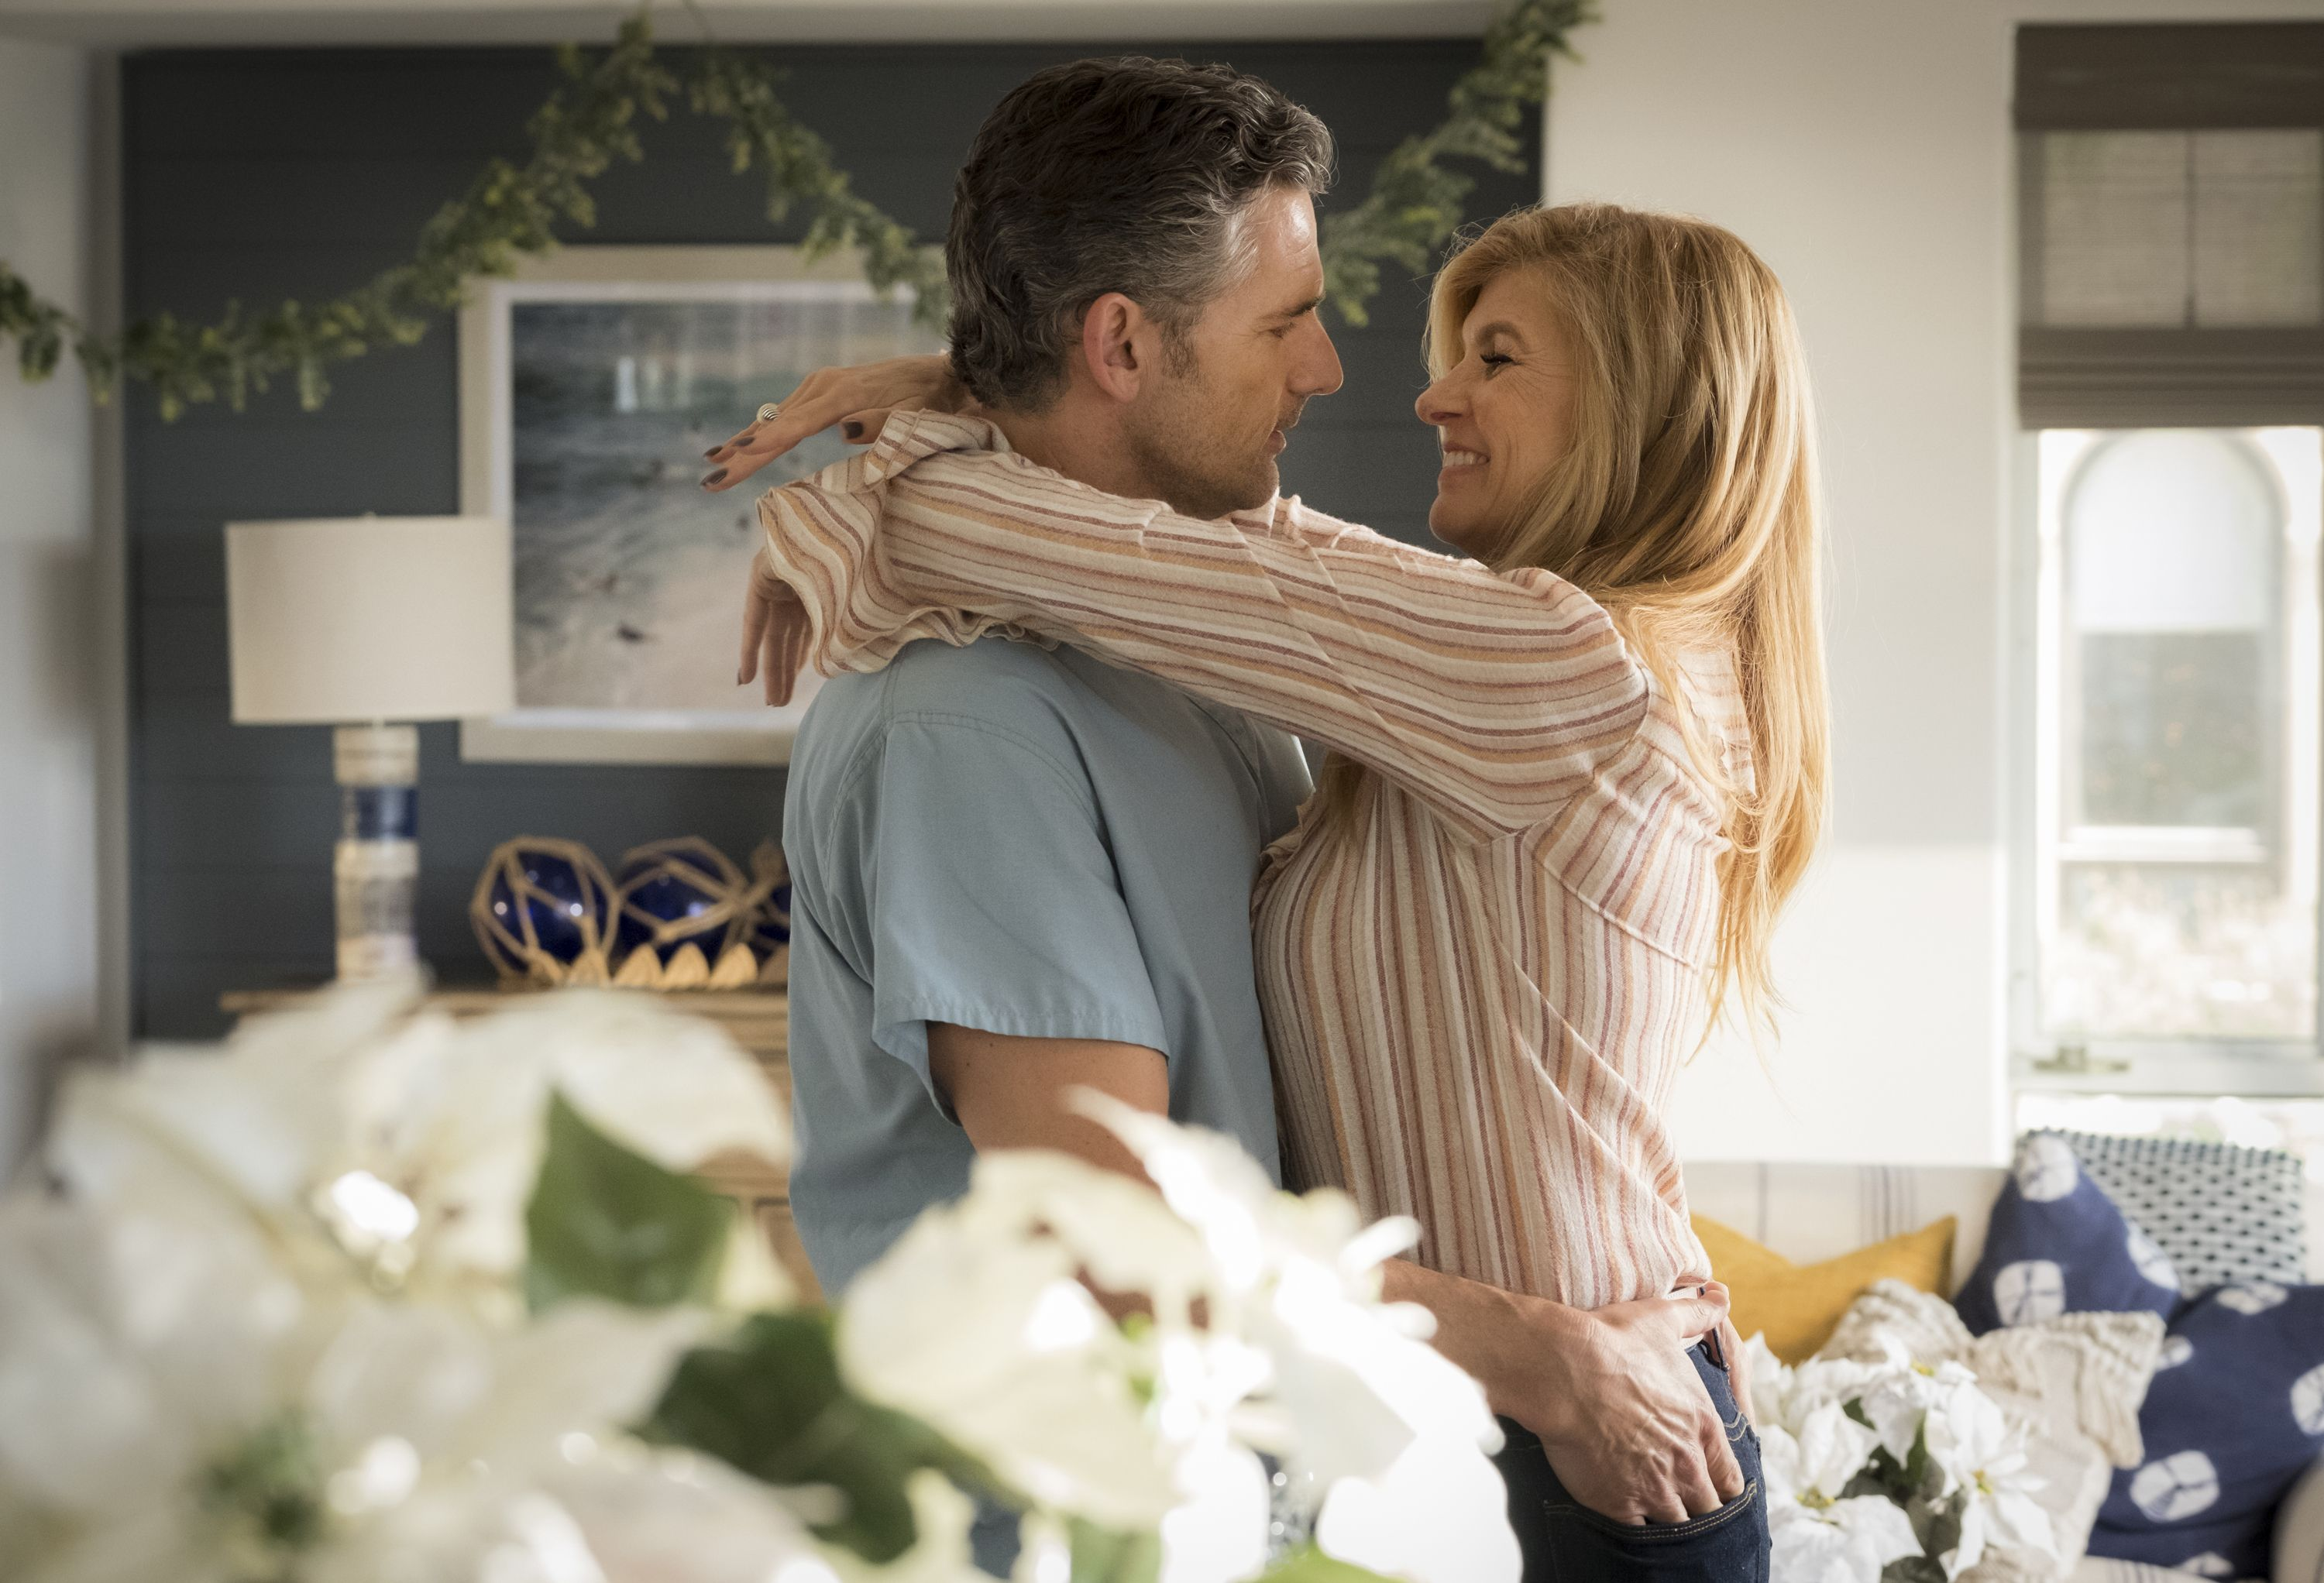 True Story of 'Dirty John' - Who Is John Meehan In Real Life?